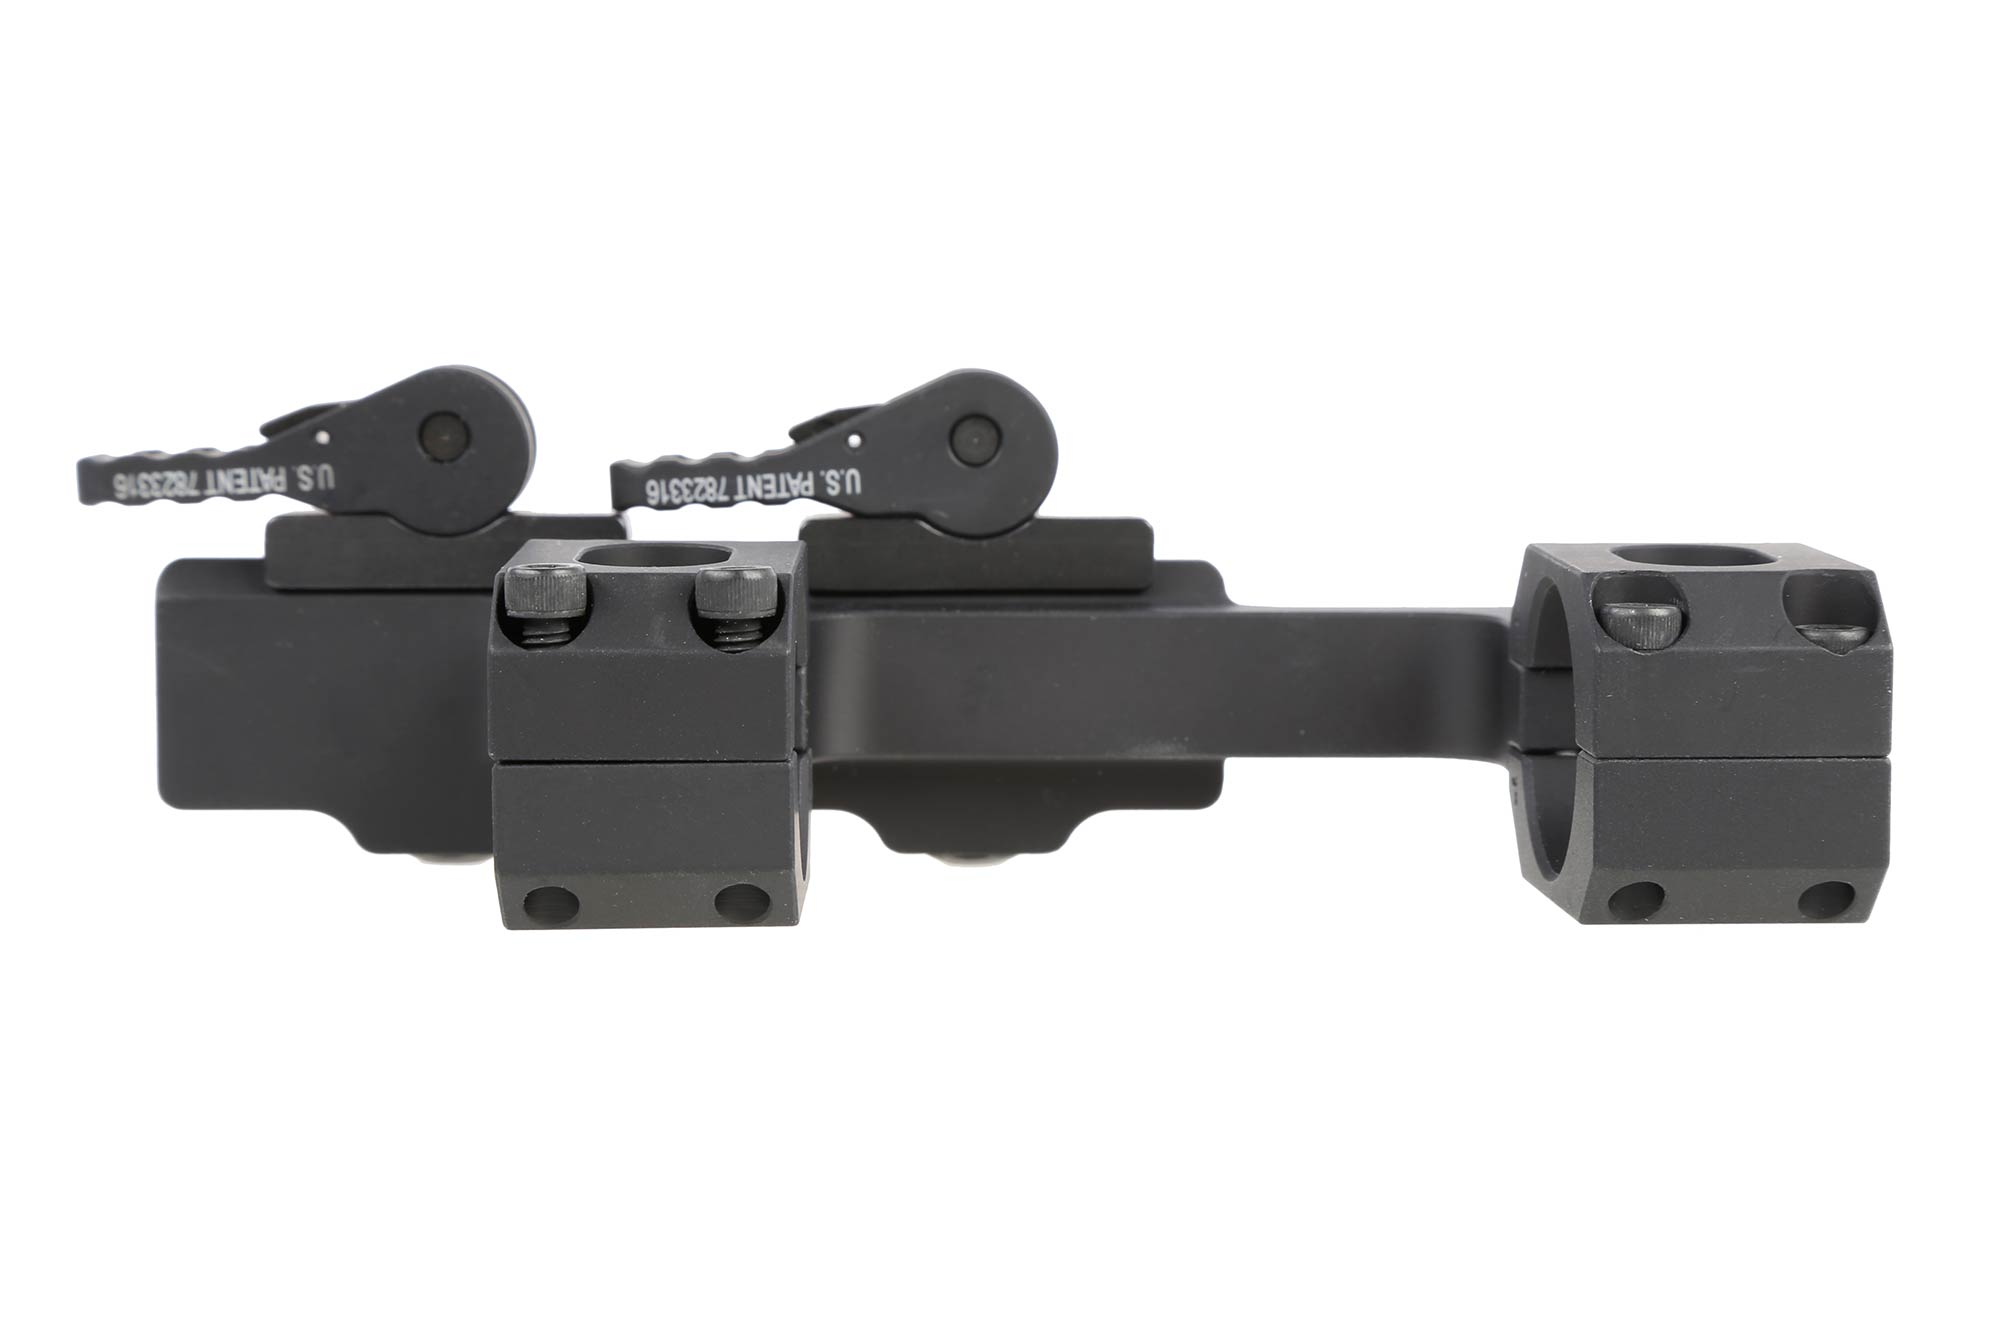 ADM Recon High QD scope mount for 1 scopes features vertical rings for improved consistency and a black anodized finish.